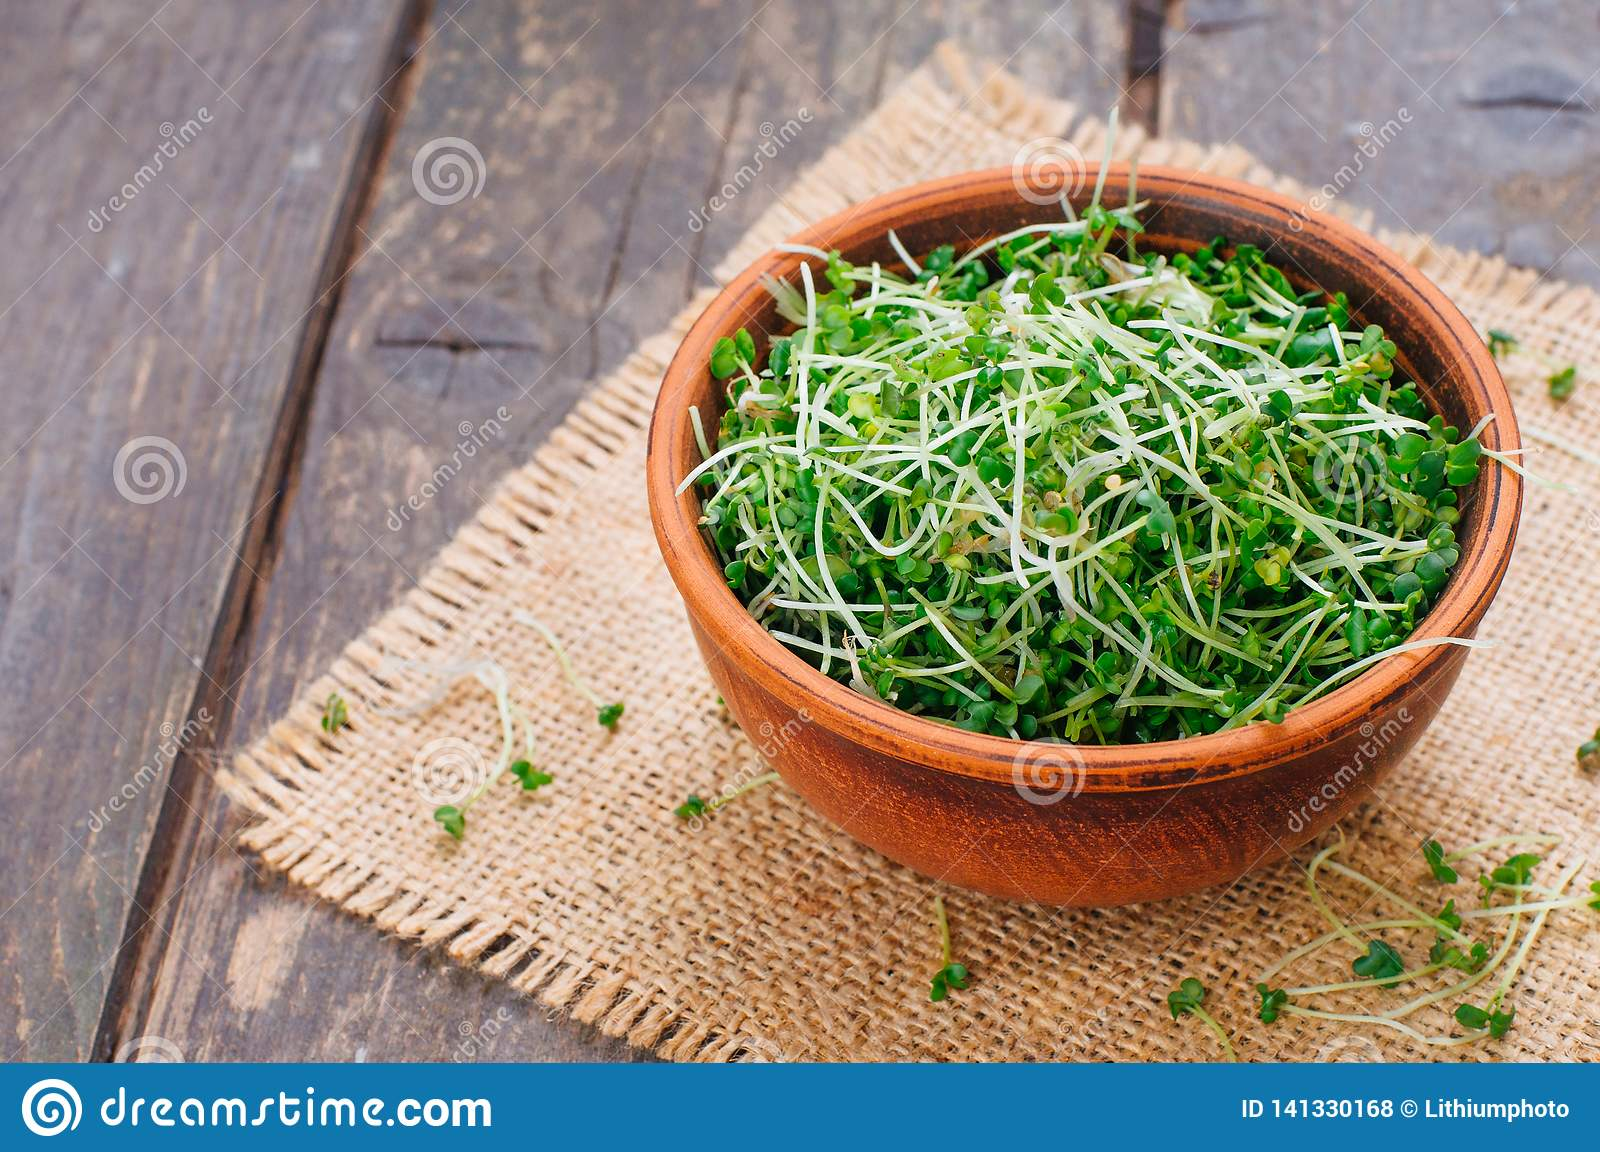 Micro greens sprouts of mustard in ceramic bowl